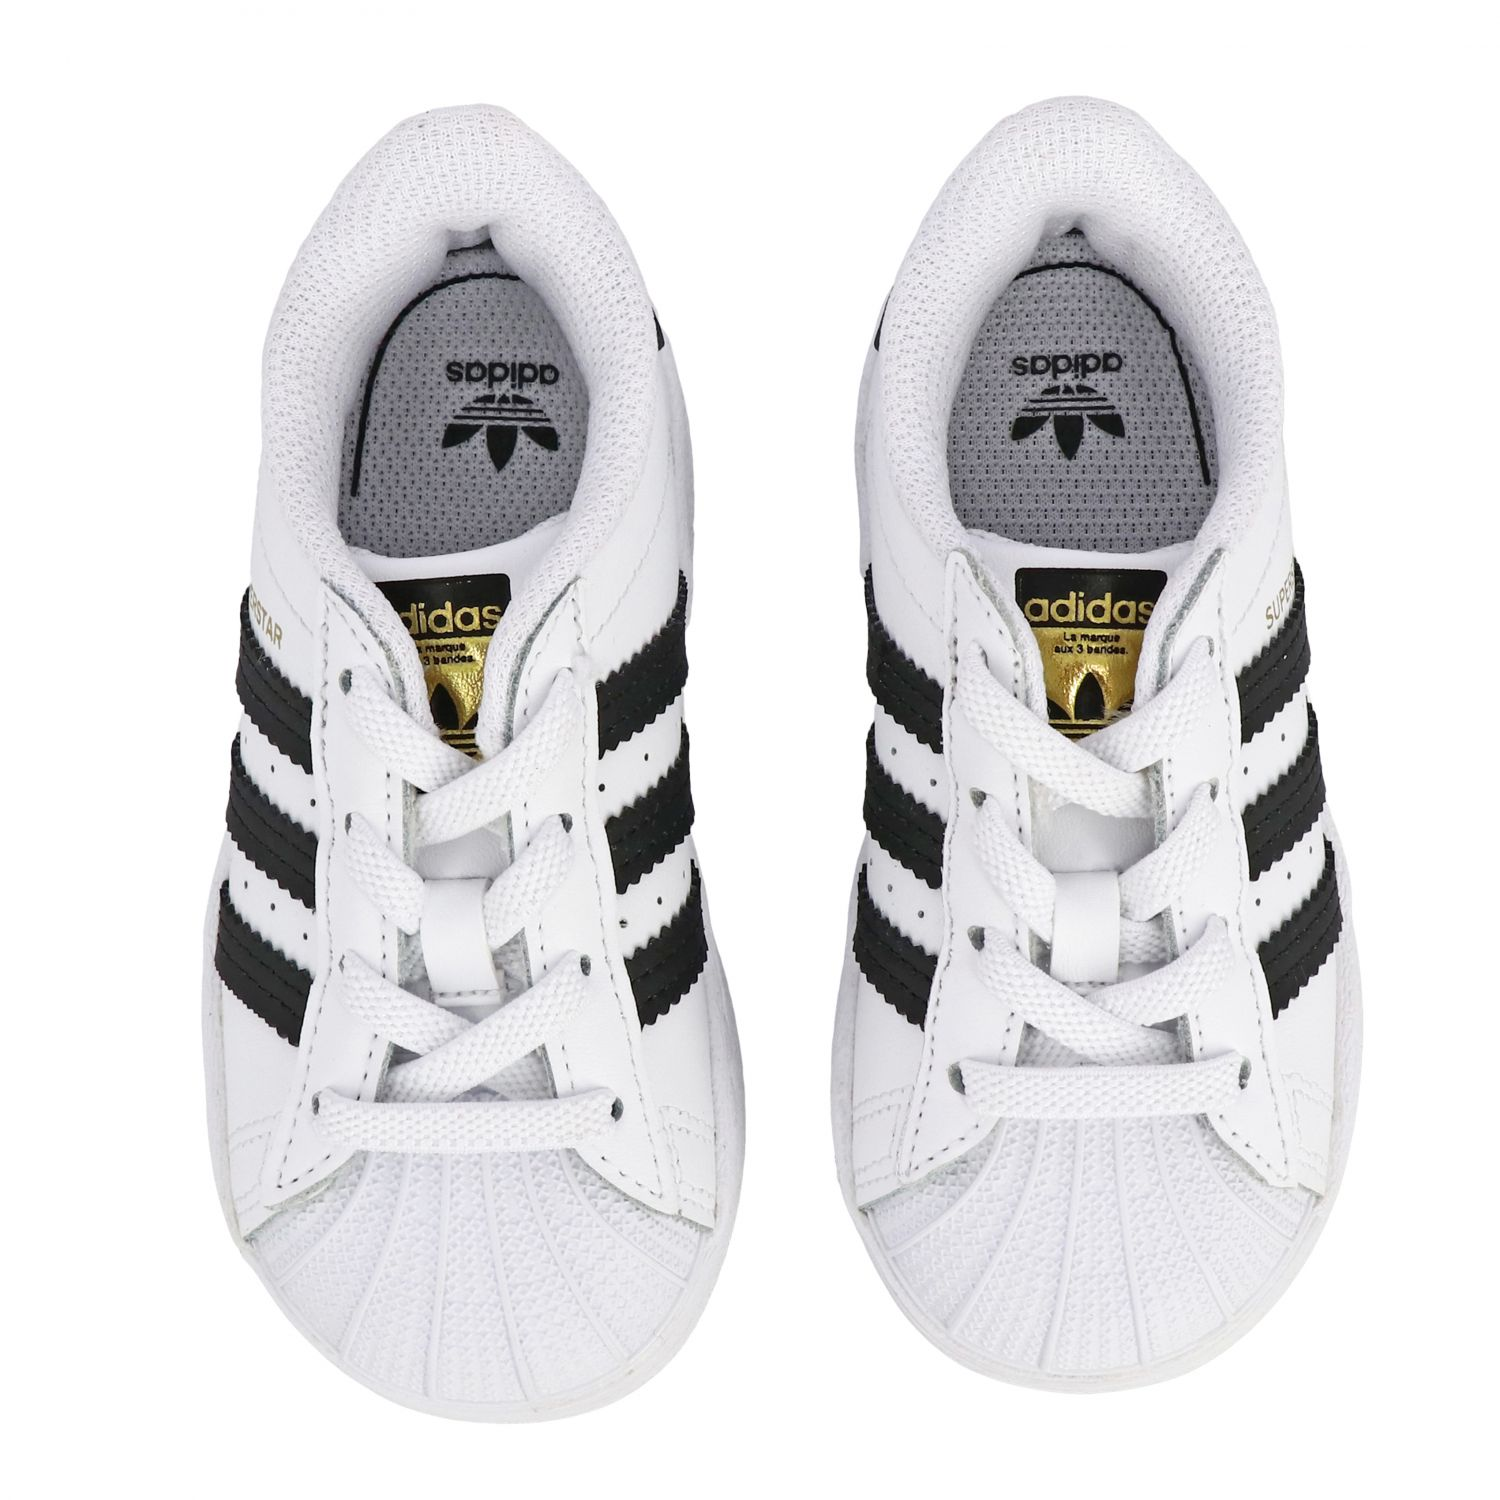 Shoes Adidas Originals: Superstar Adidas Originals leather sneakers white 3